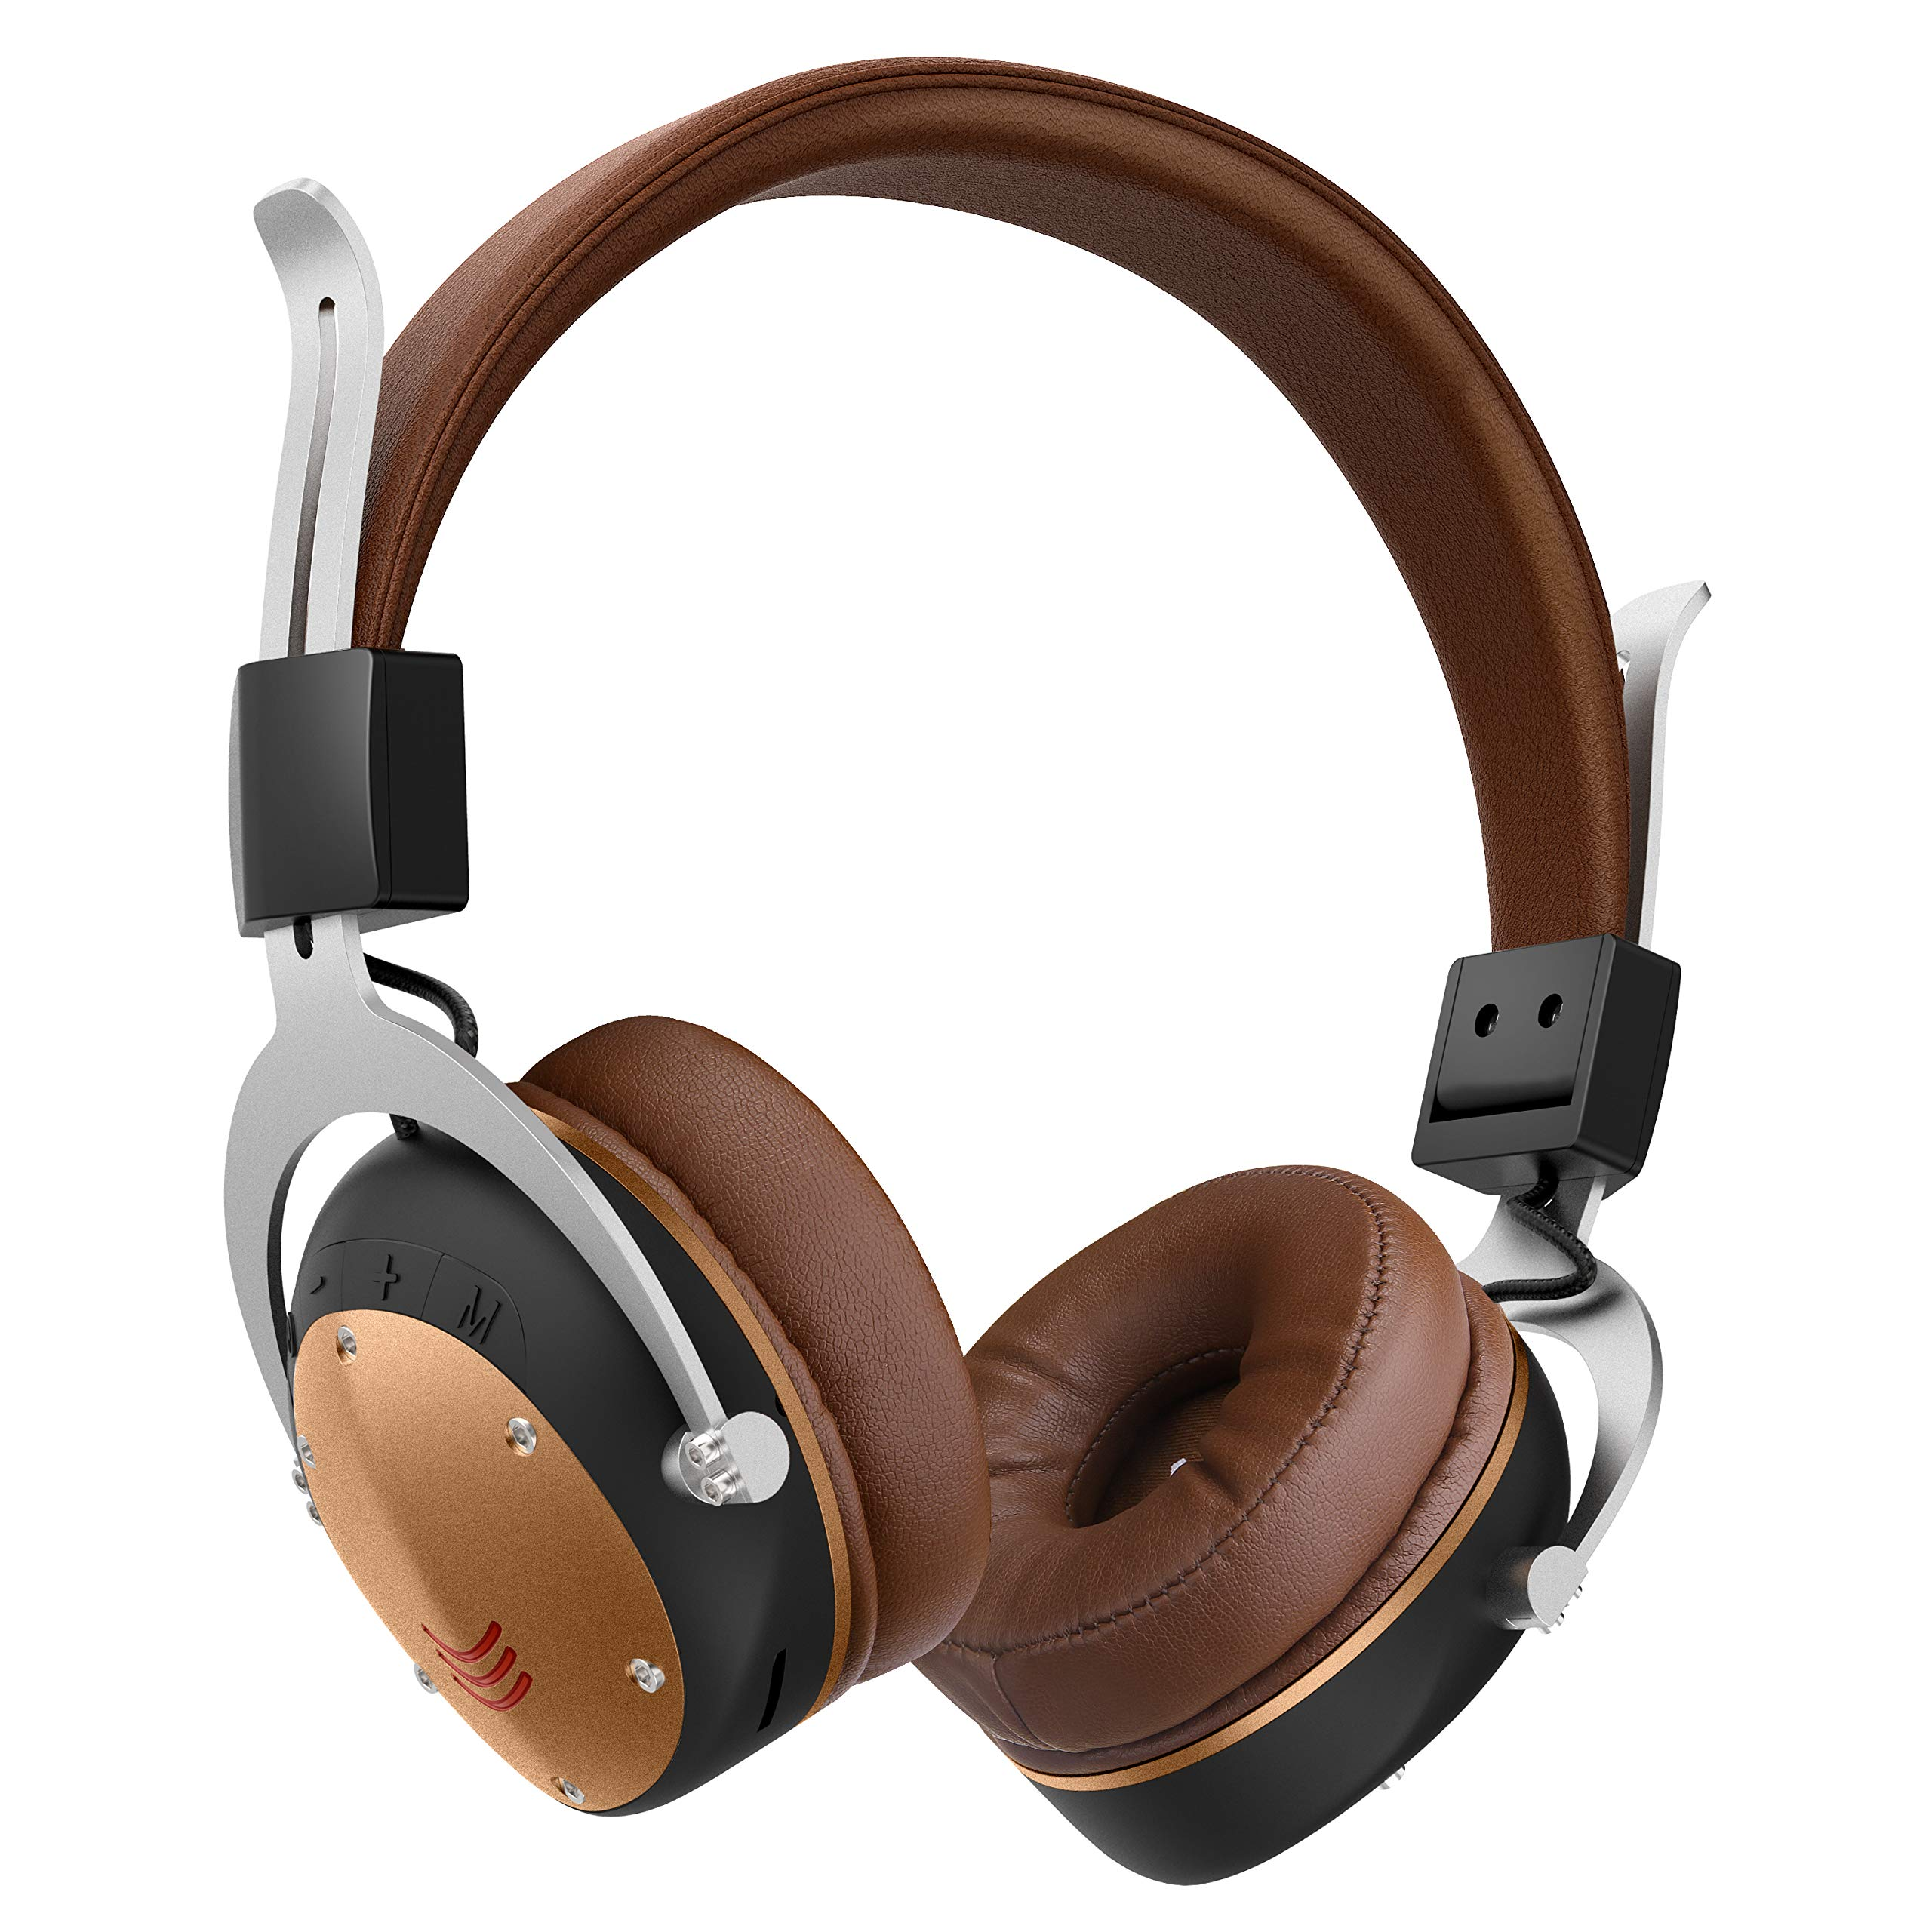 Wireless Over Ear Headphones,Bluetooth Headphones Over Ear with Soft Memory Protein Ear Muffs HD Sound Quality Long Autonomy Comfortable Design w/Built-in Mic Wired Mode PC/Cell Phones/TV by ELEVENSES